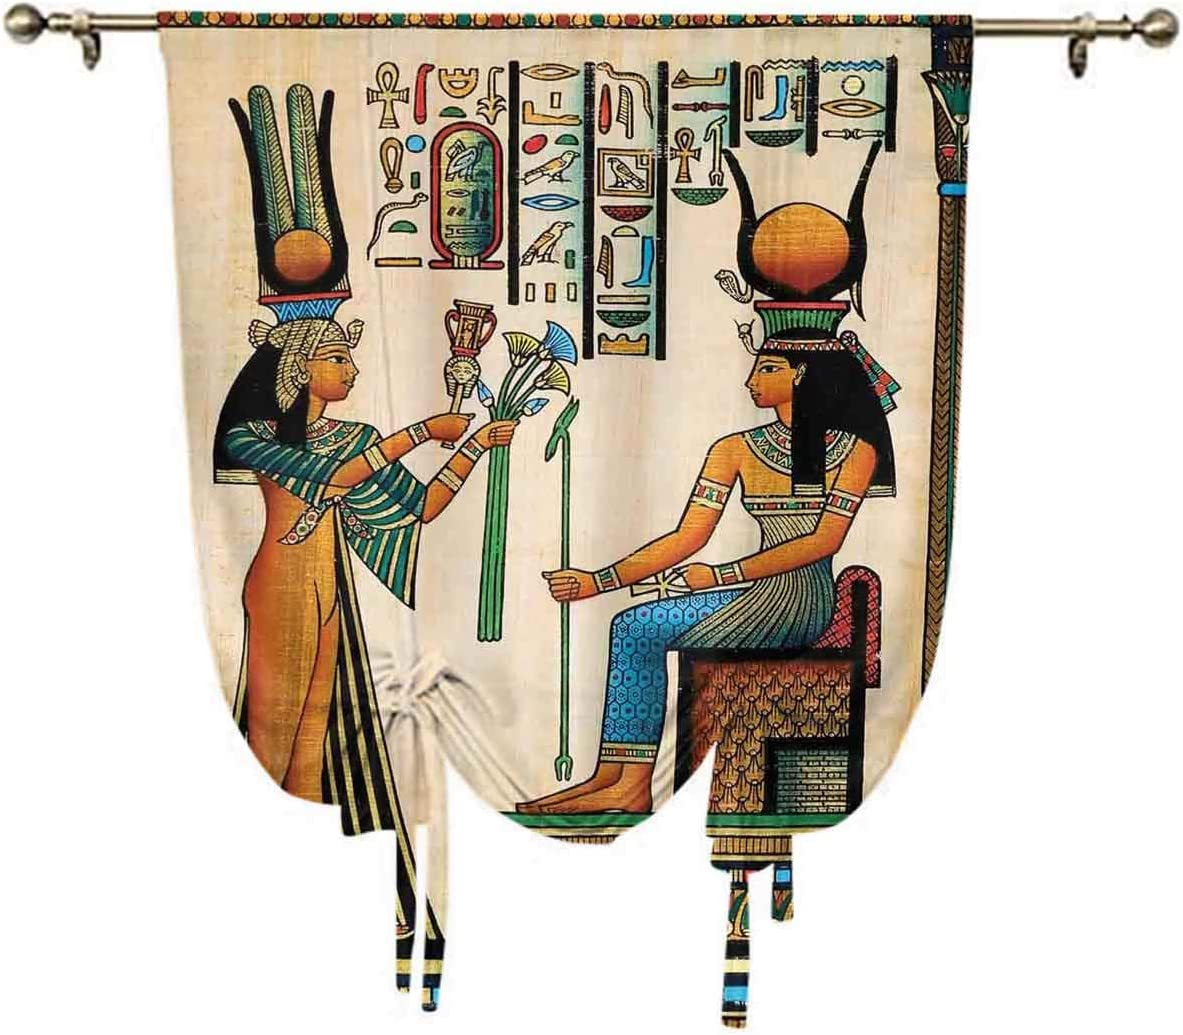 oobon Egyptian Decor Roman Curtain,Old Egyptian Papyrus Depicting Queen Nefertari with Historical Empire Artwork Thermal Insulated Blackout Curtain,31x47 Inch,for Small Window Single Rod Pocket Multi